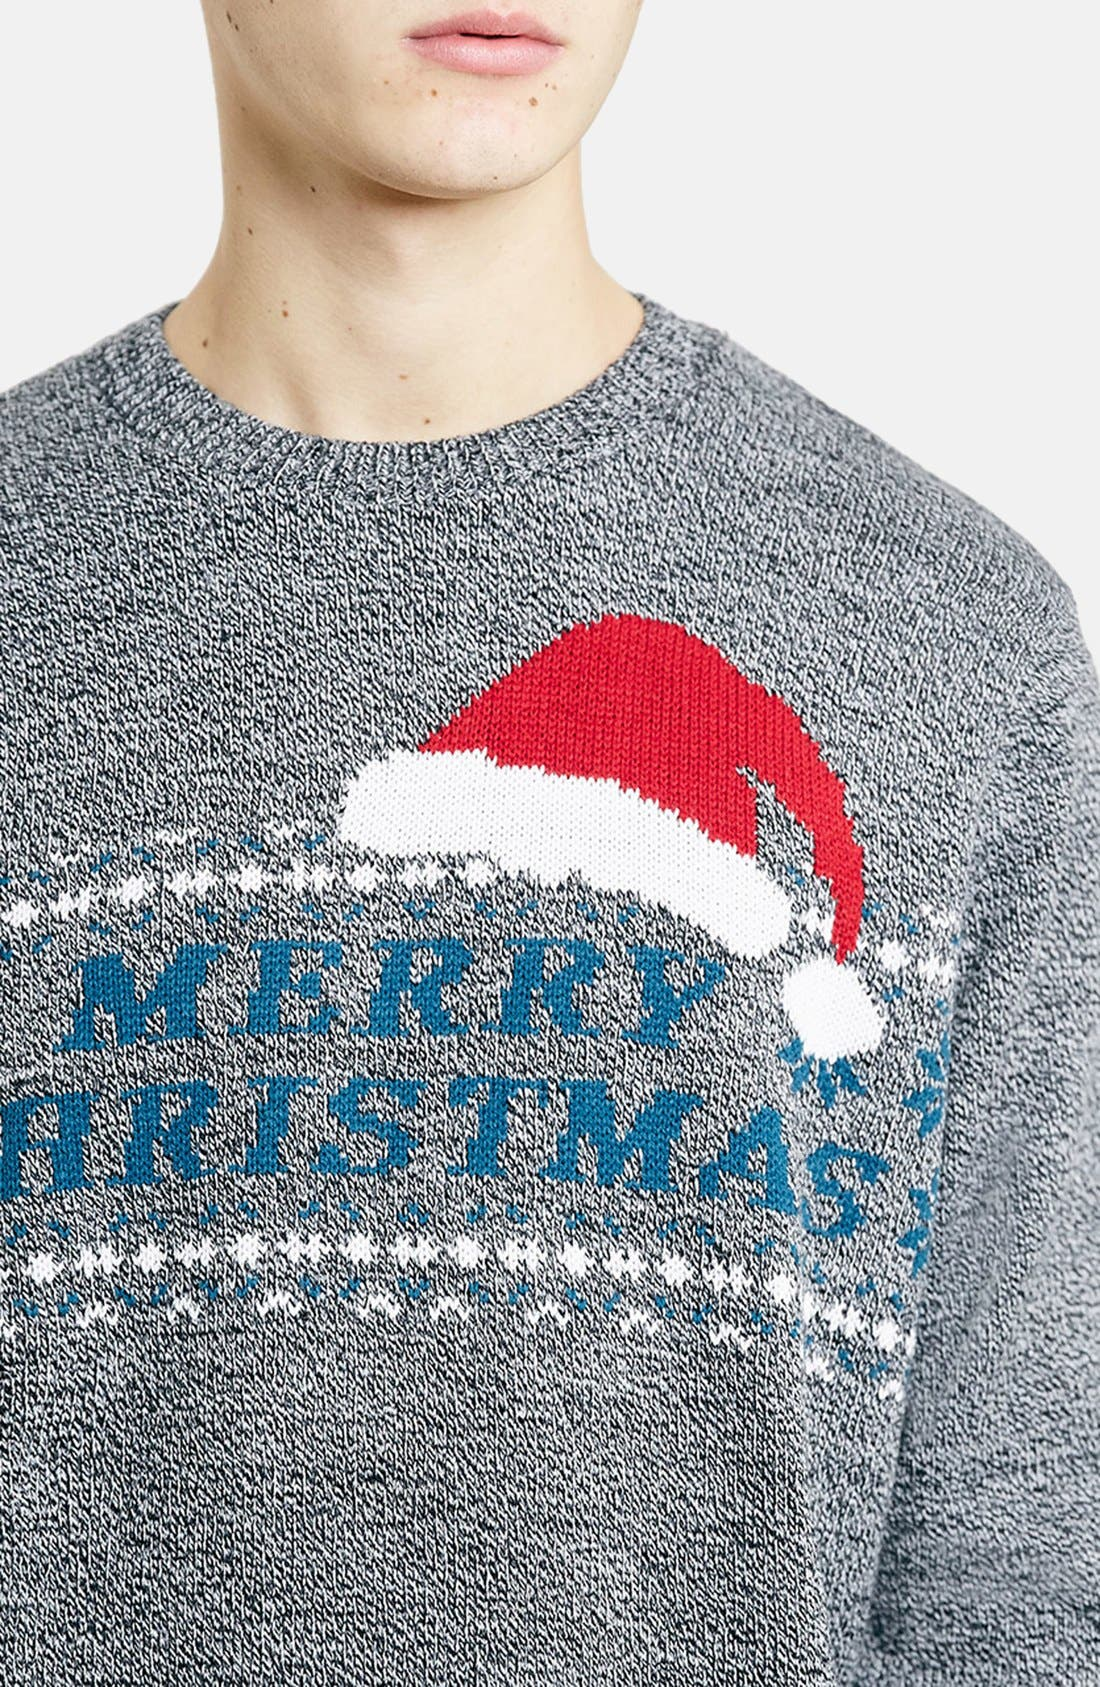 TOPMAN,                             Merry Christmas Crewneck Sweater,                             Alternate thumbnail 3, color,                             400